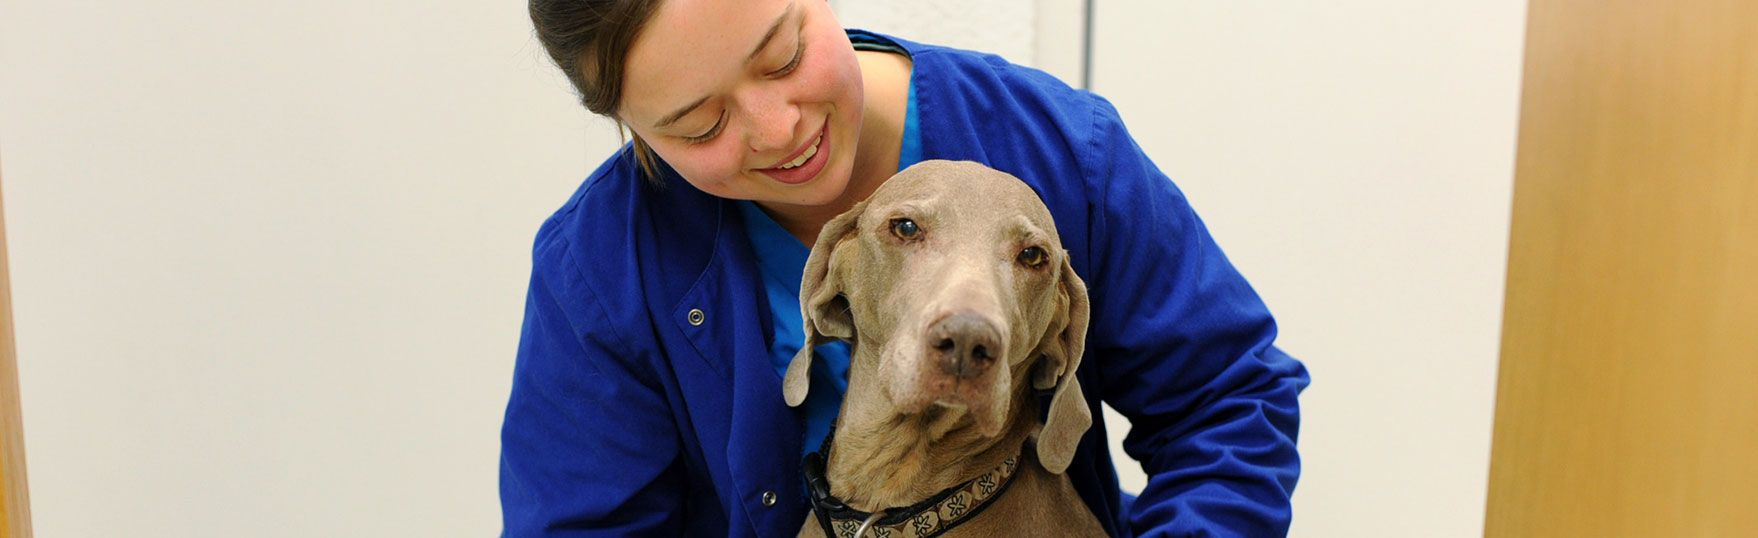 Mobile Vet service offers the best possible Veterinary